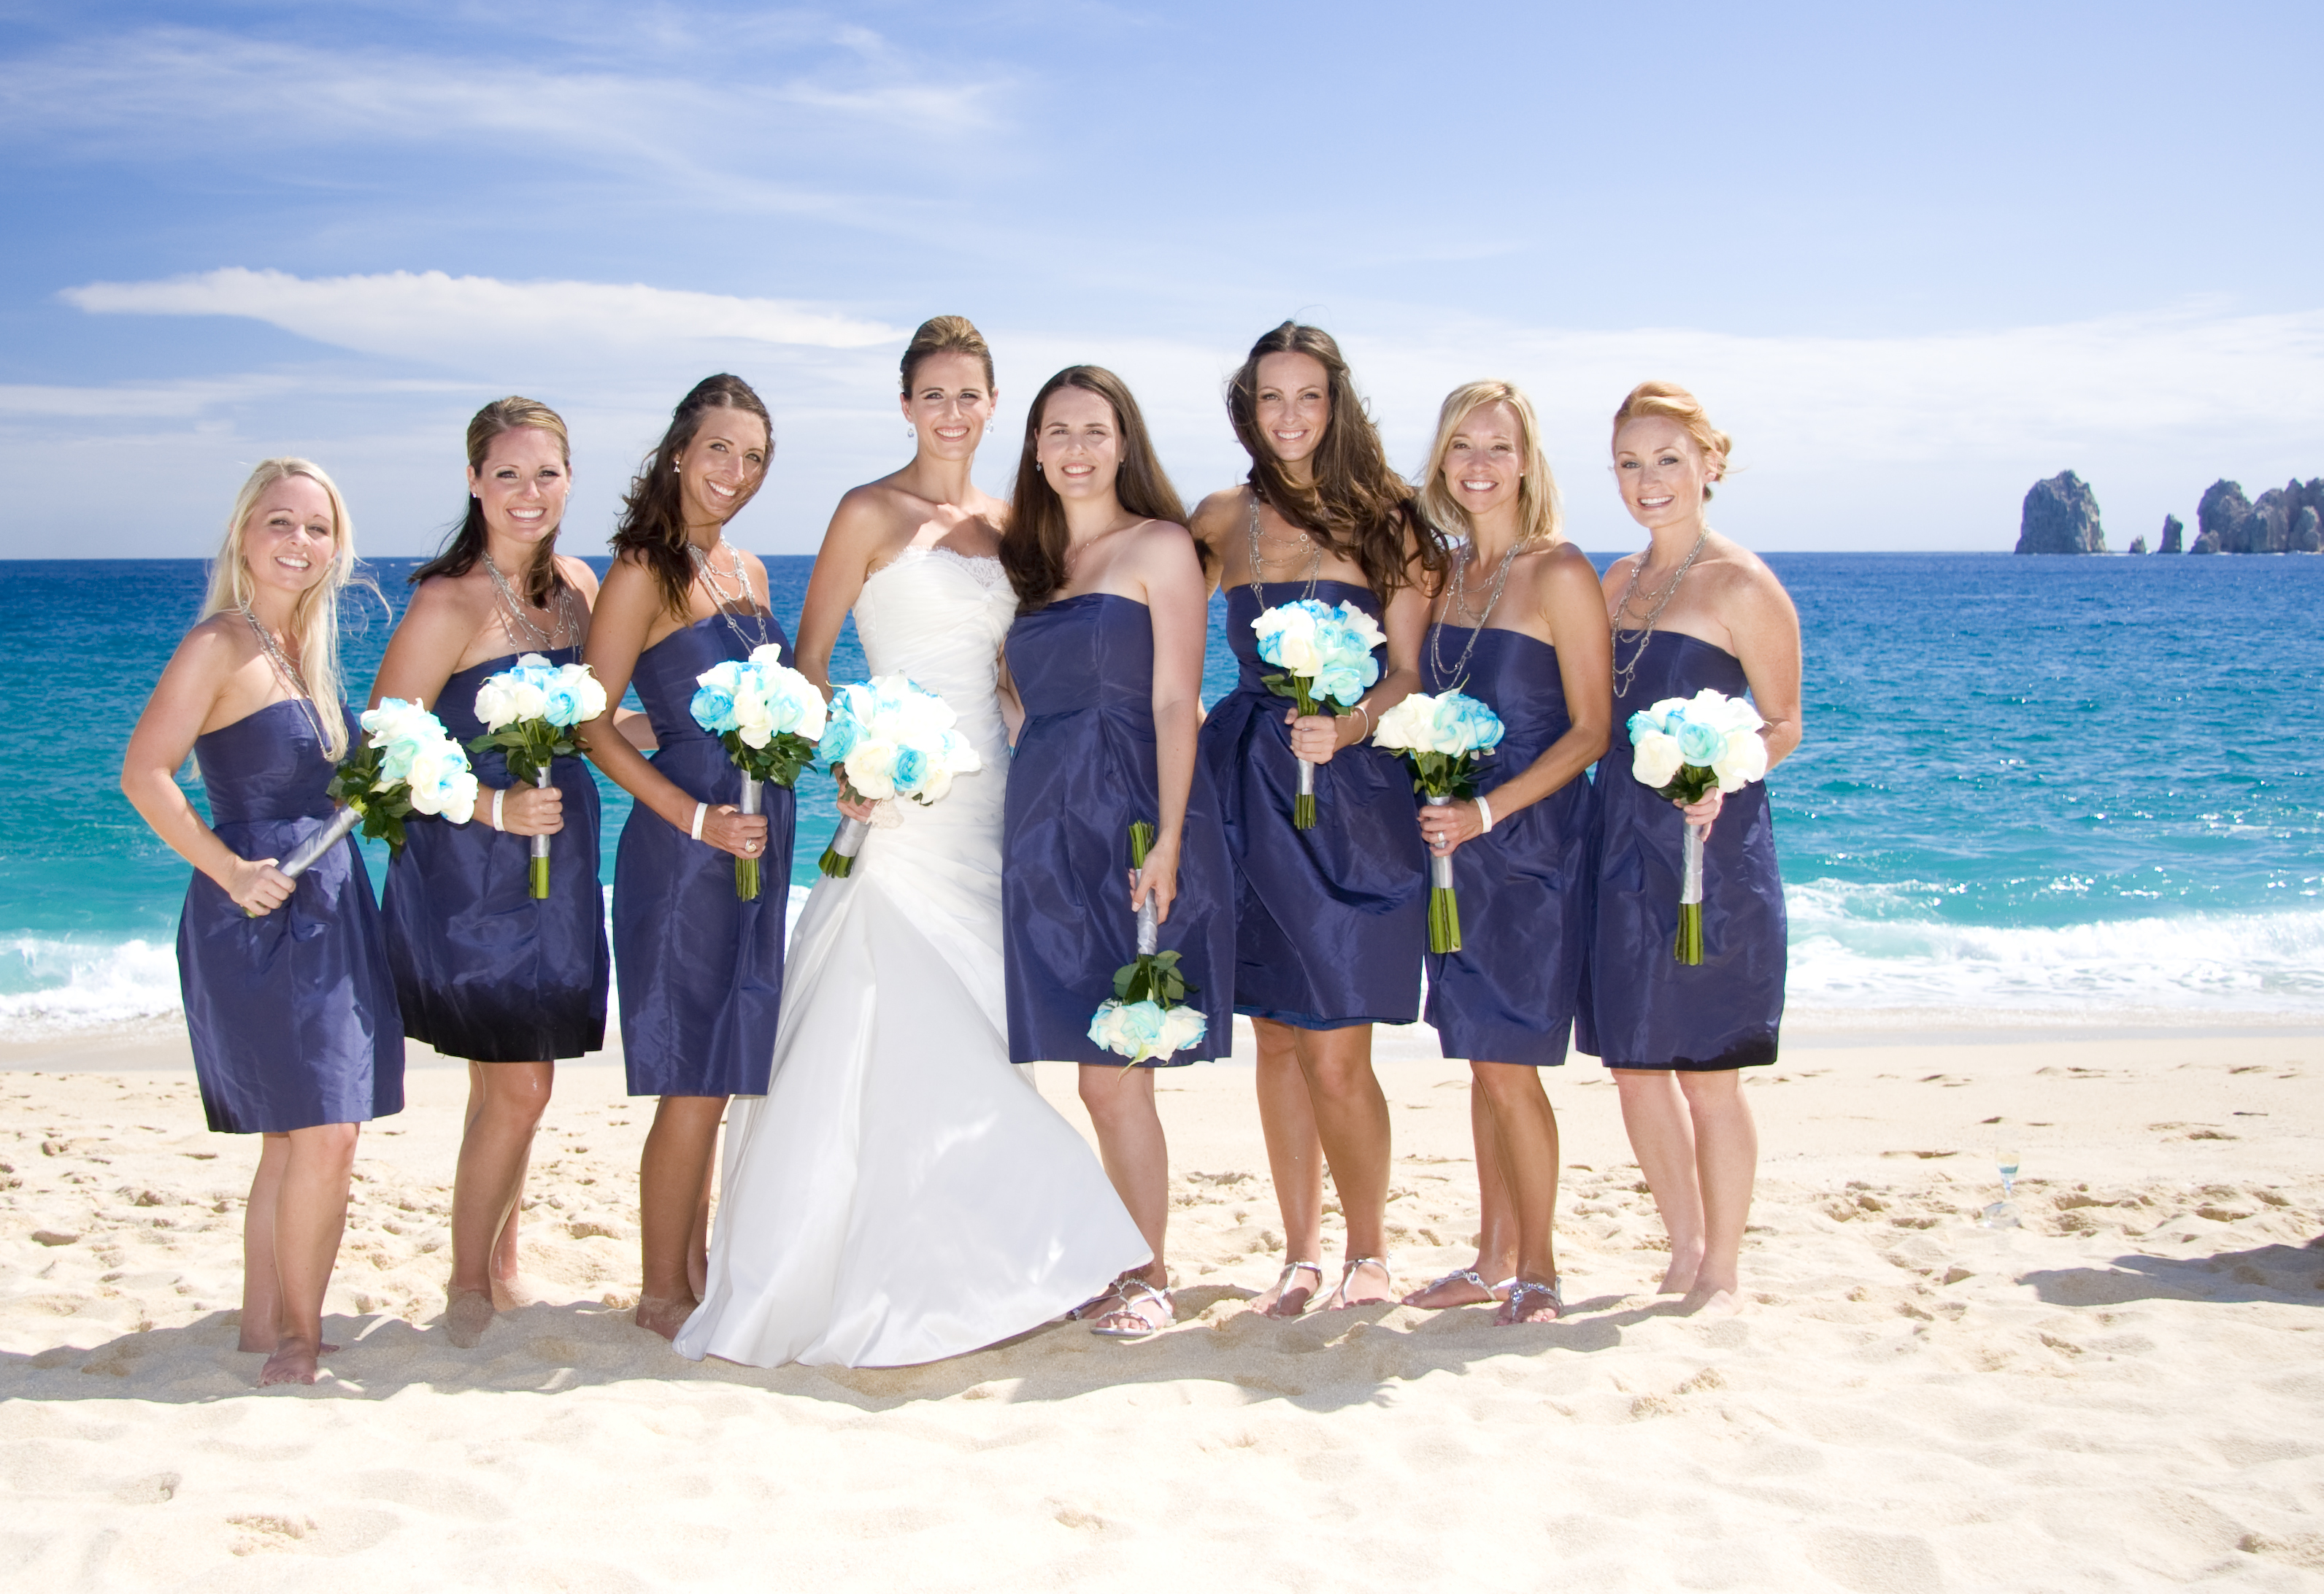 Bridesmaids, Bridesmaids Dresses, Beach Wedding Dresses, Destinations, Fashion, blue, Mexico, Beach, Cabo